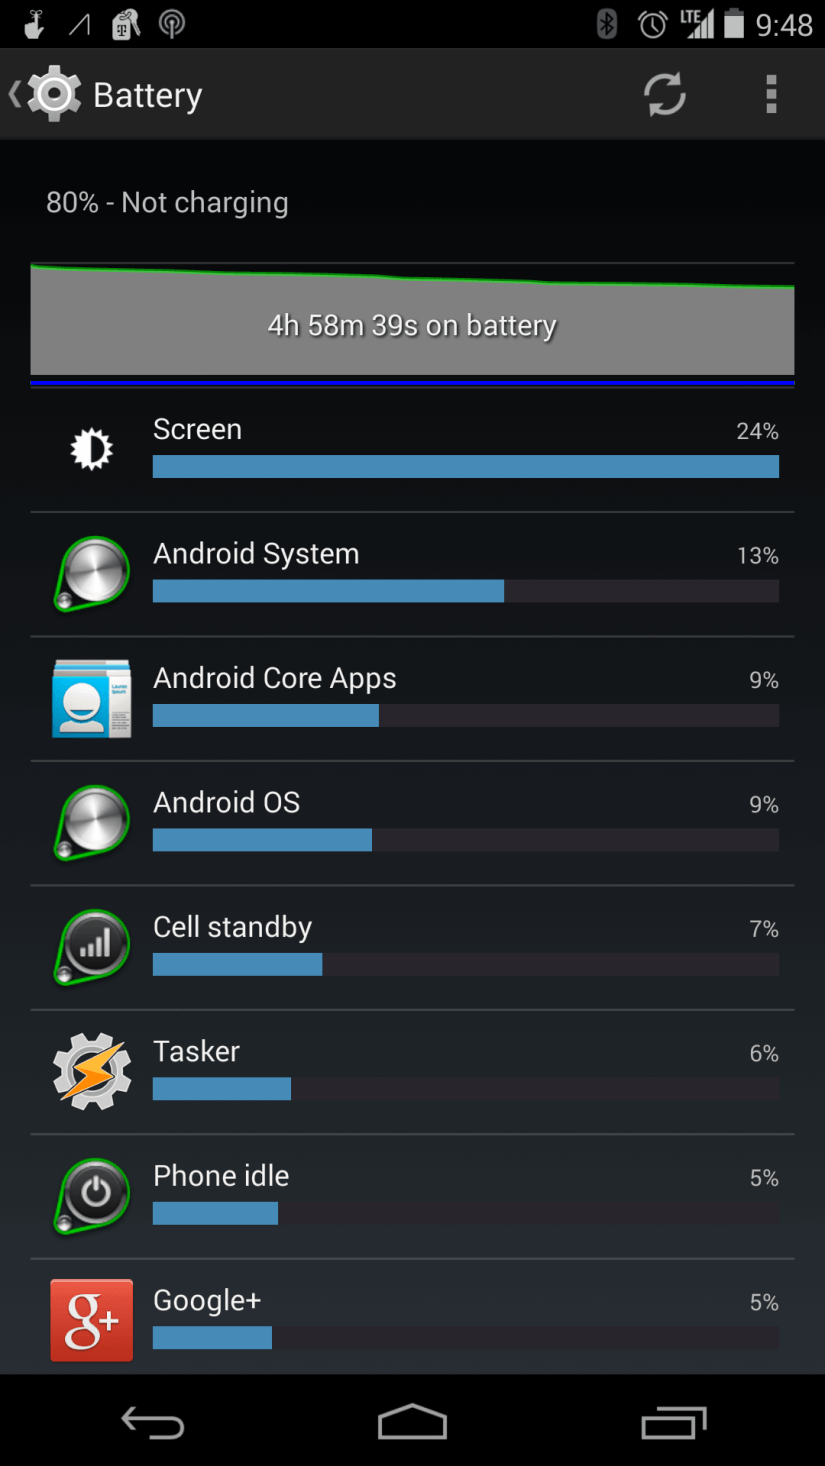 And no... I don't have an aftermarket extended battery or a custom ROM